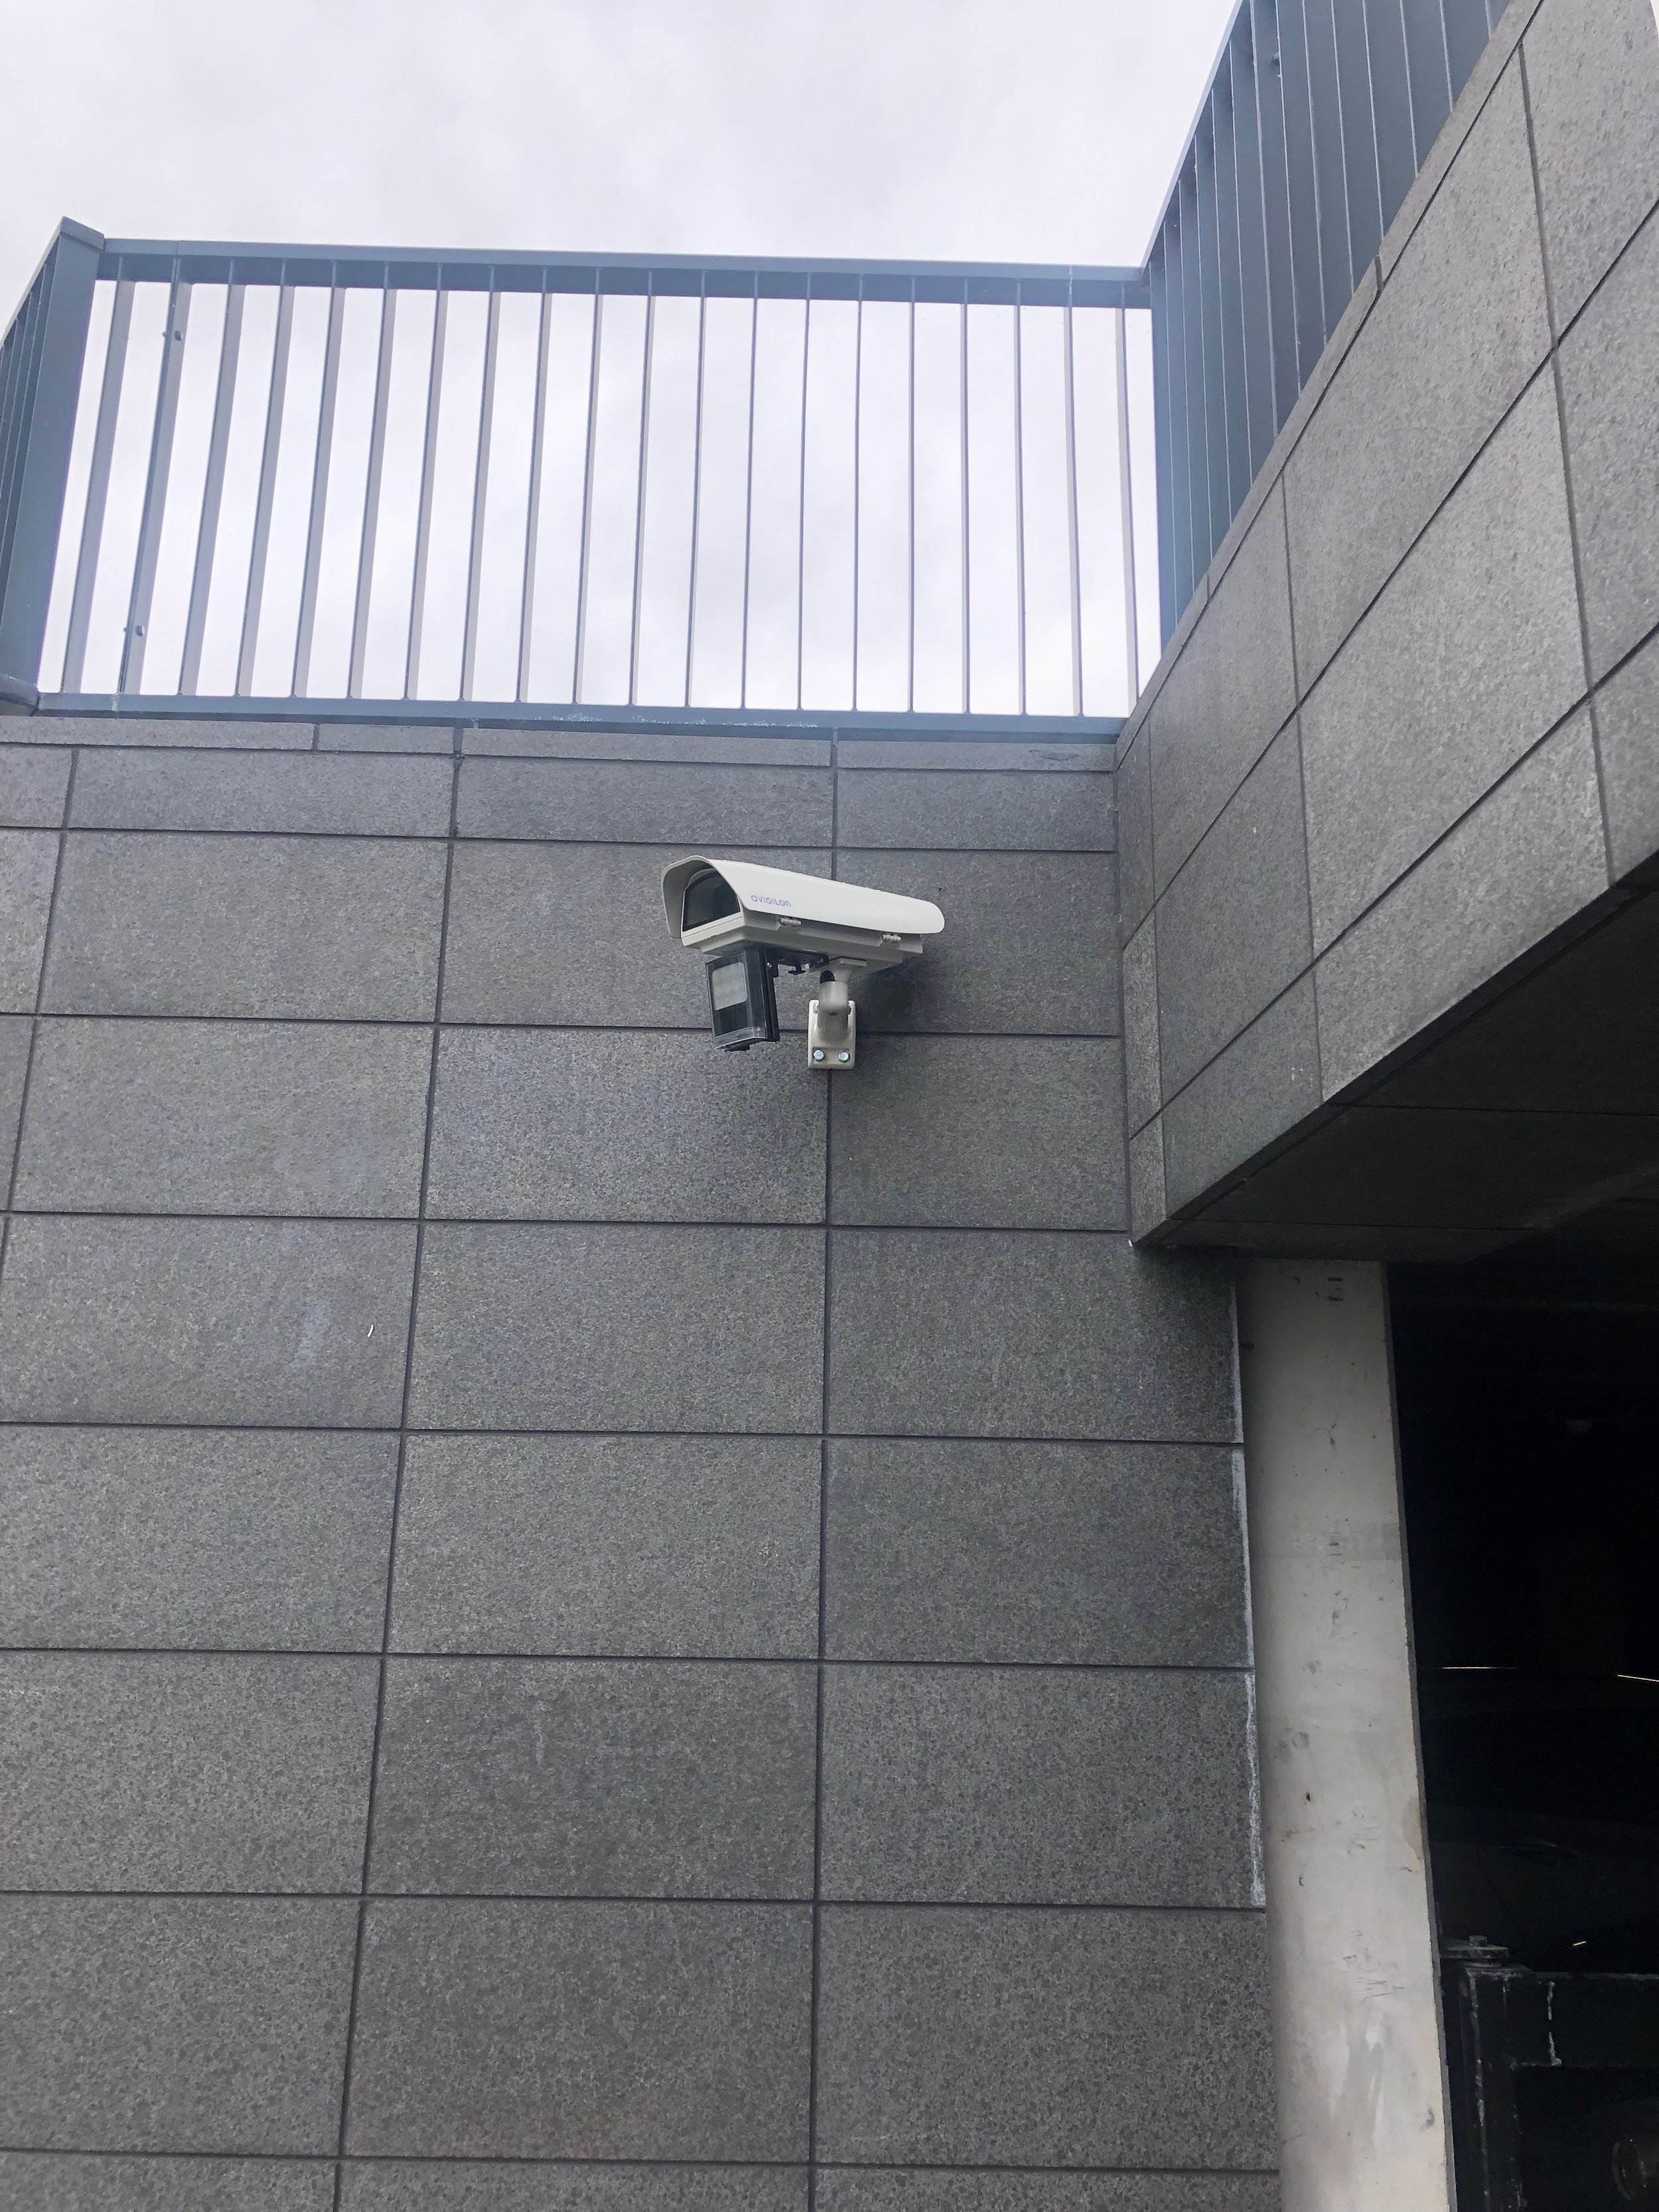 Avigilon anpr camera by Usee in action